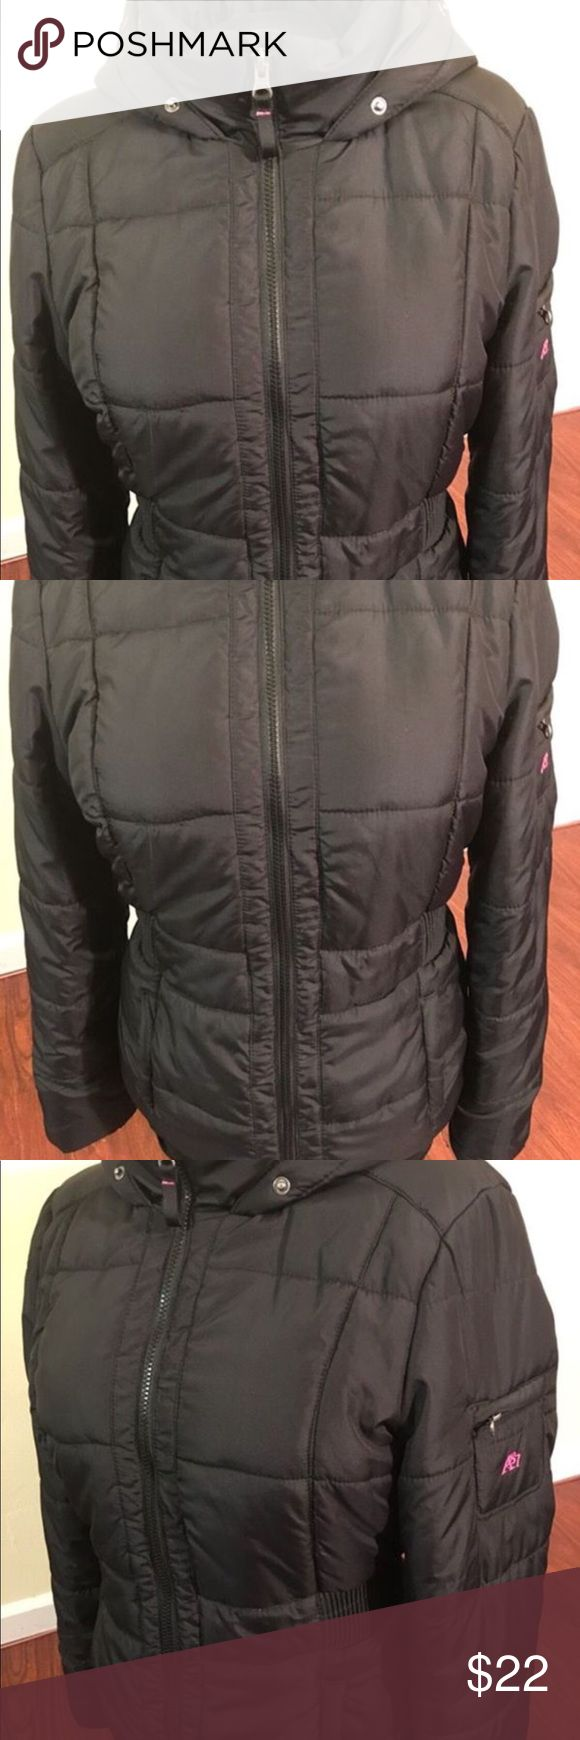 Aeropostale Woman's XLarge Insulated Hooded Jacket Aeropostale Woman's XLarge Insulated Hooded Jacket, Like New condition, missing hood fur. Retail $89 Aeropostale Jackets & Coats Puffers